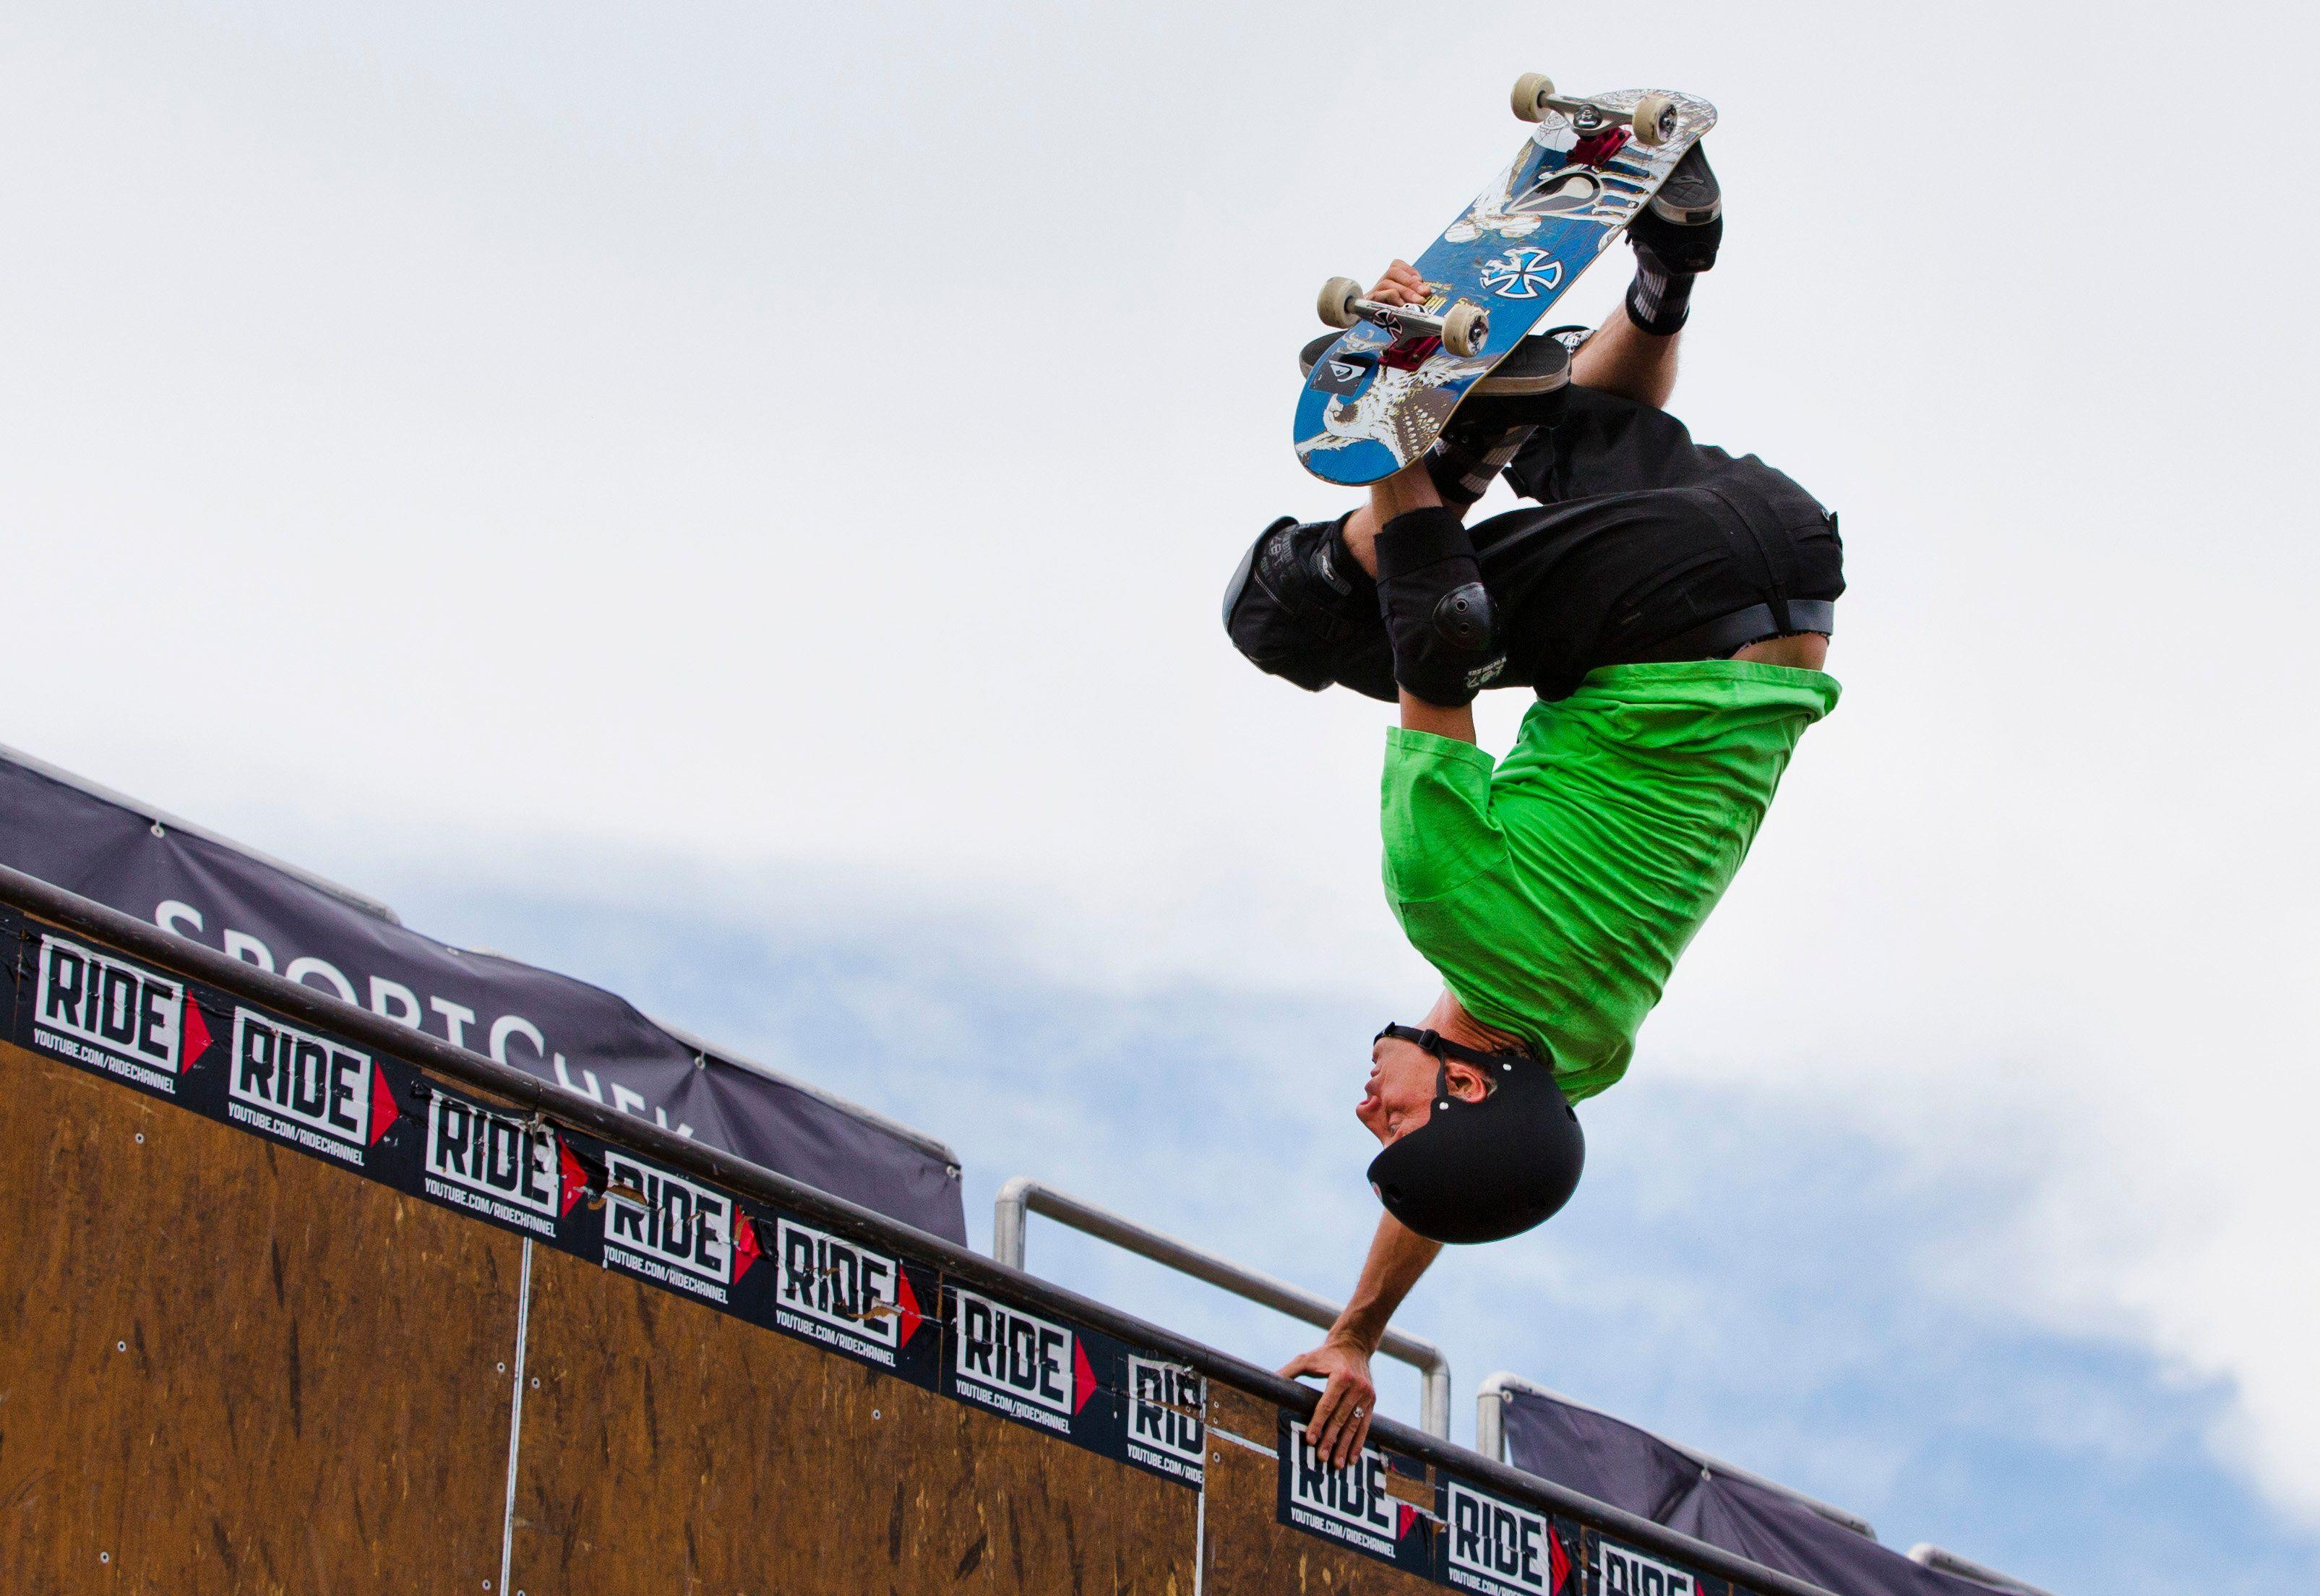 Tony Hawk drops into the cannabis business with new Canadian partnership